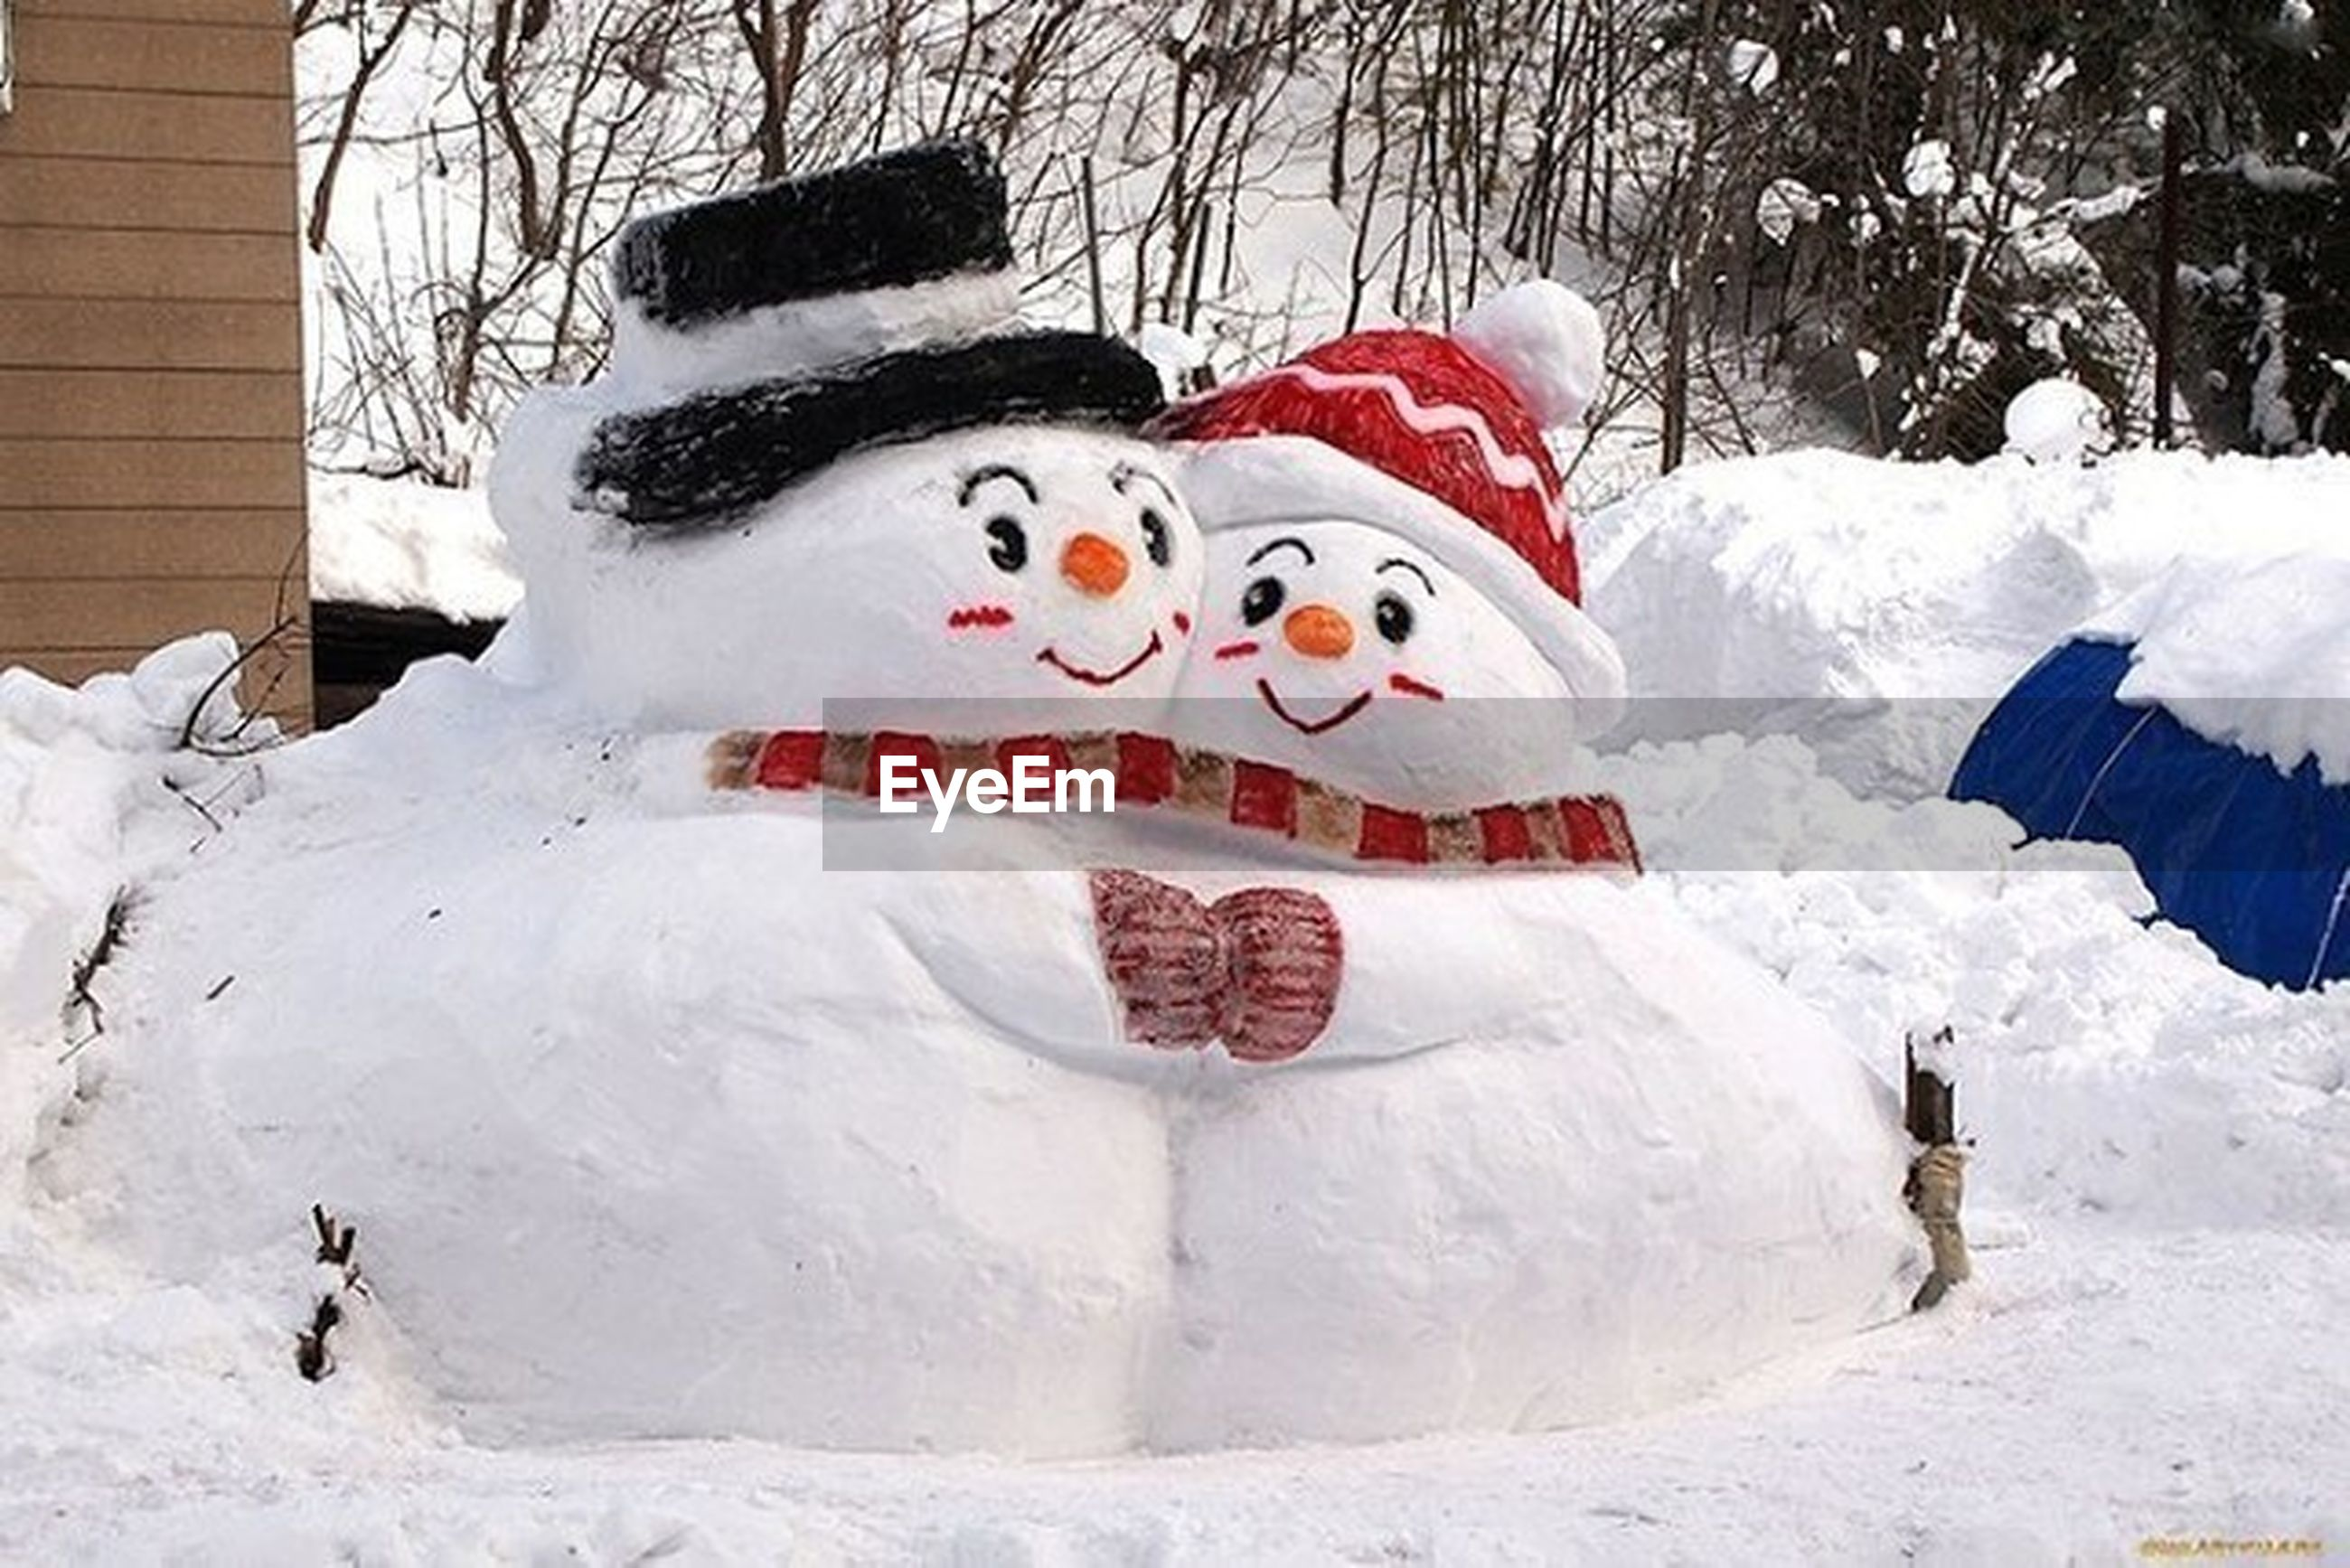 snow, outdoors, day, no people, anthropomorphic face, tree, clown